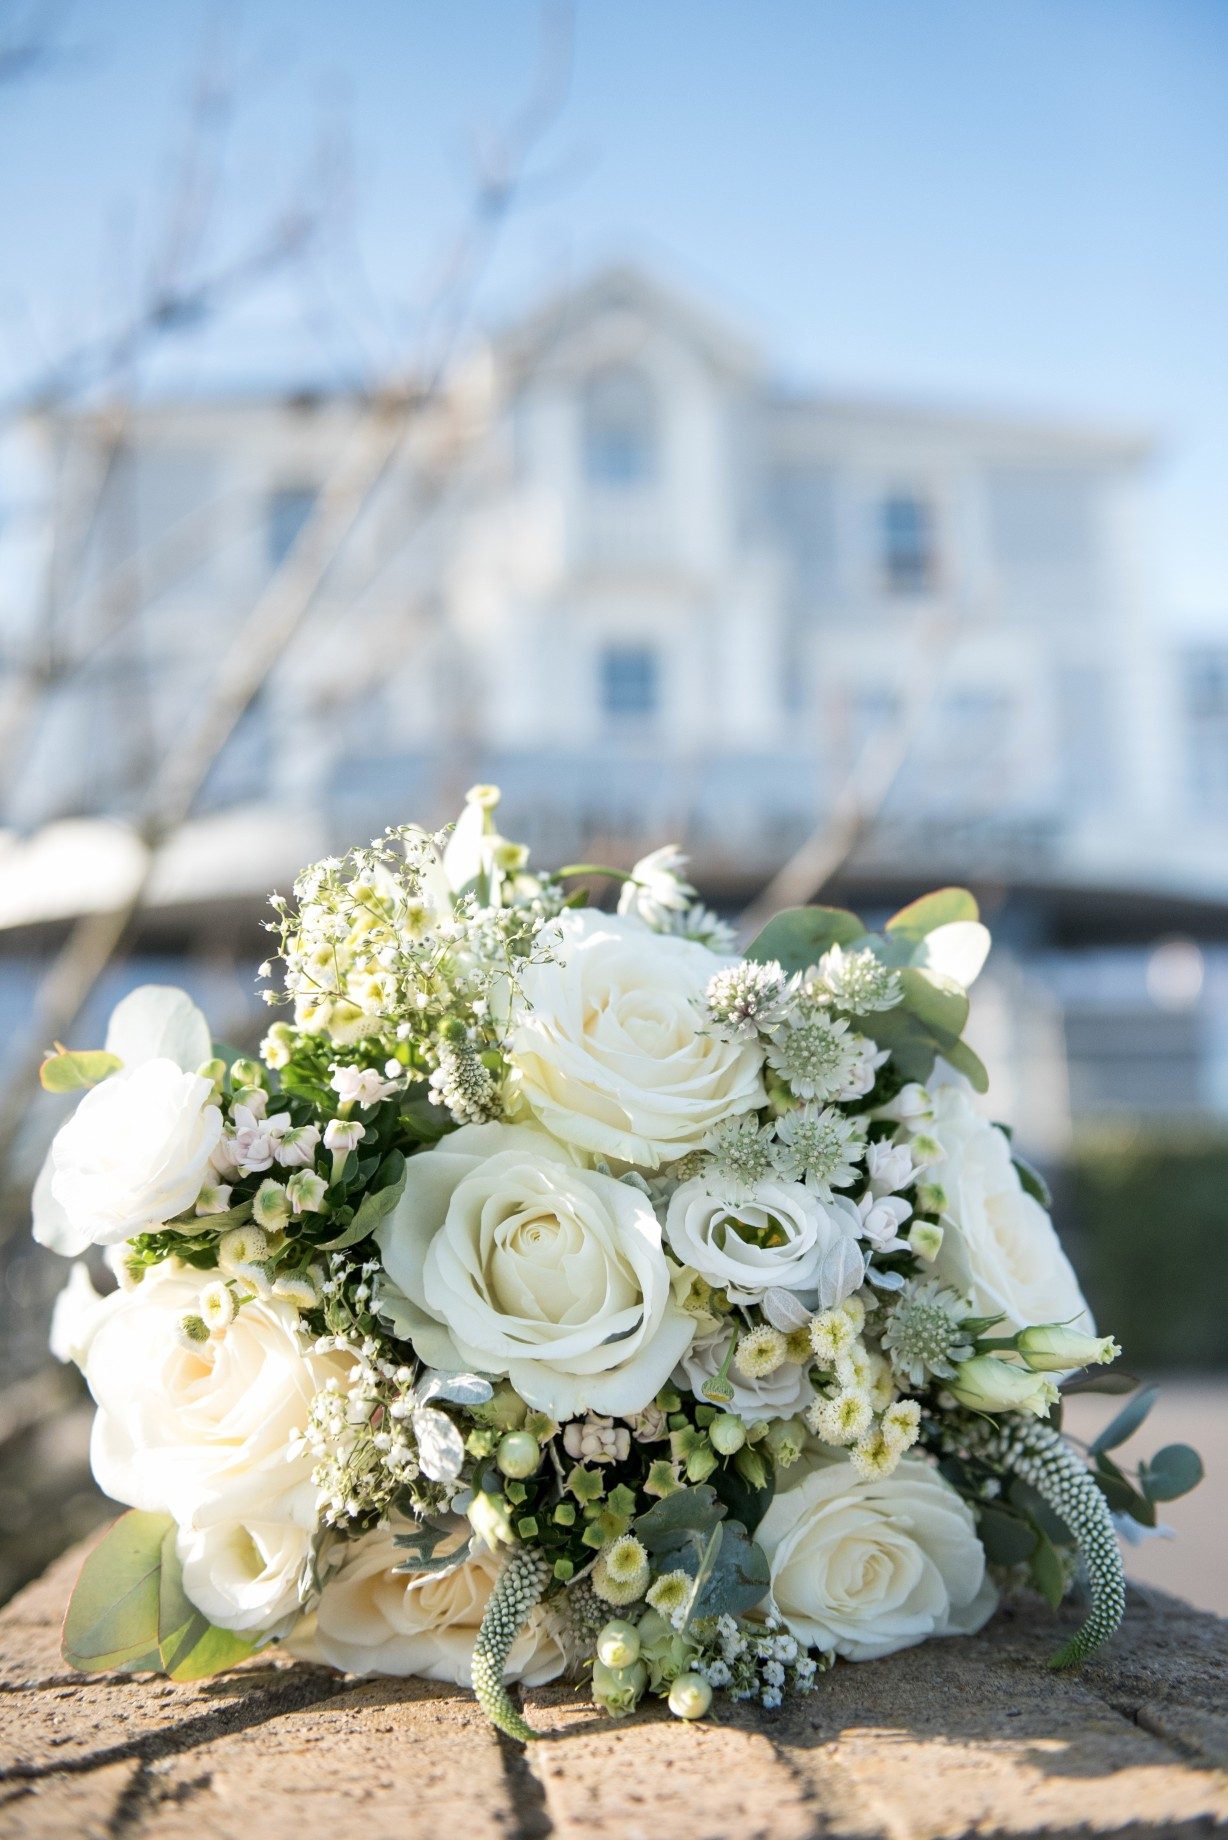 Wedding photography - Hythe beach wedding - brides bouquet